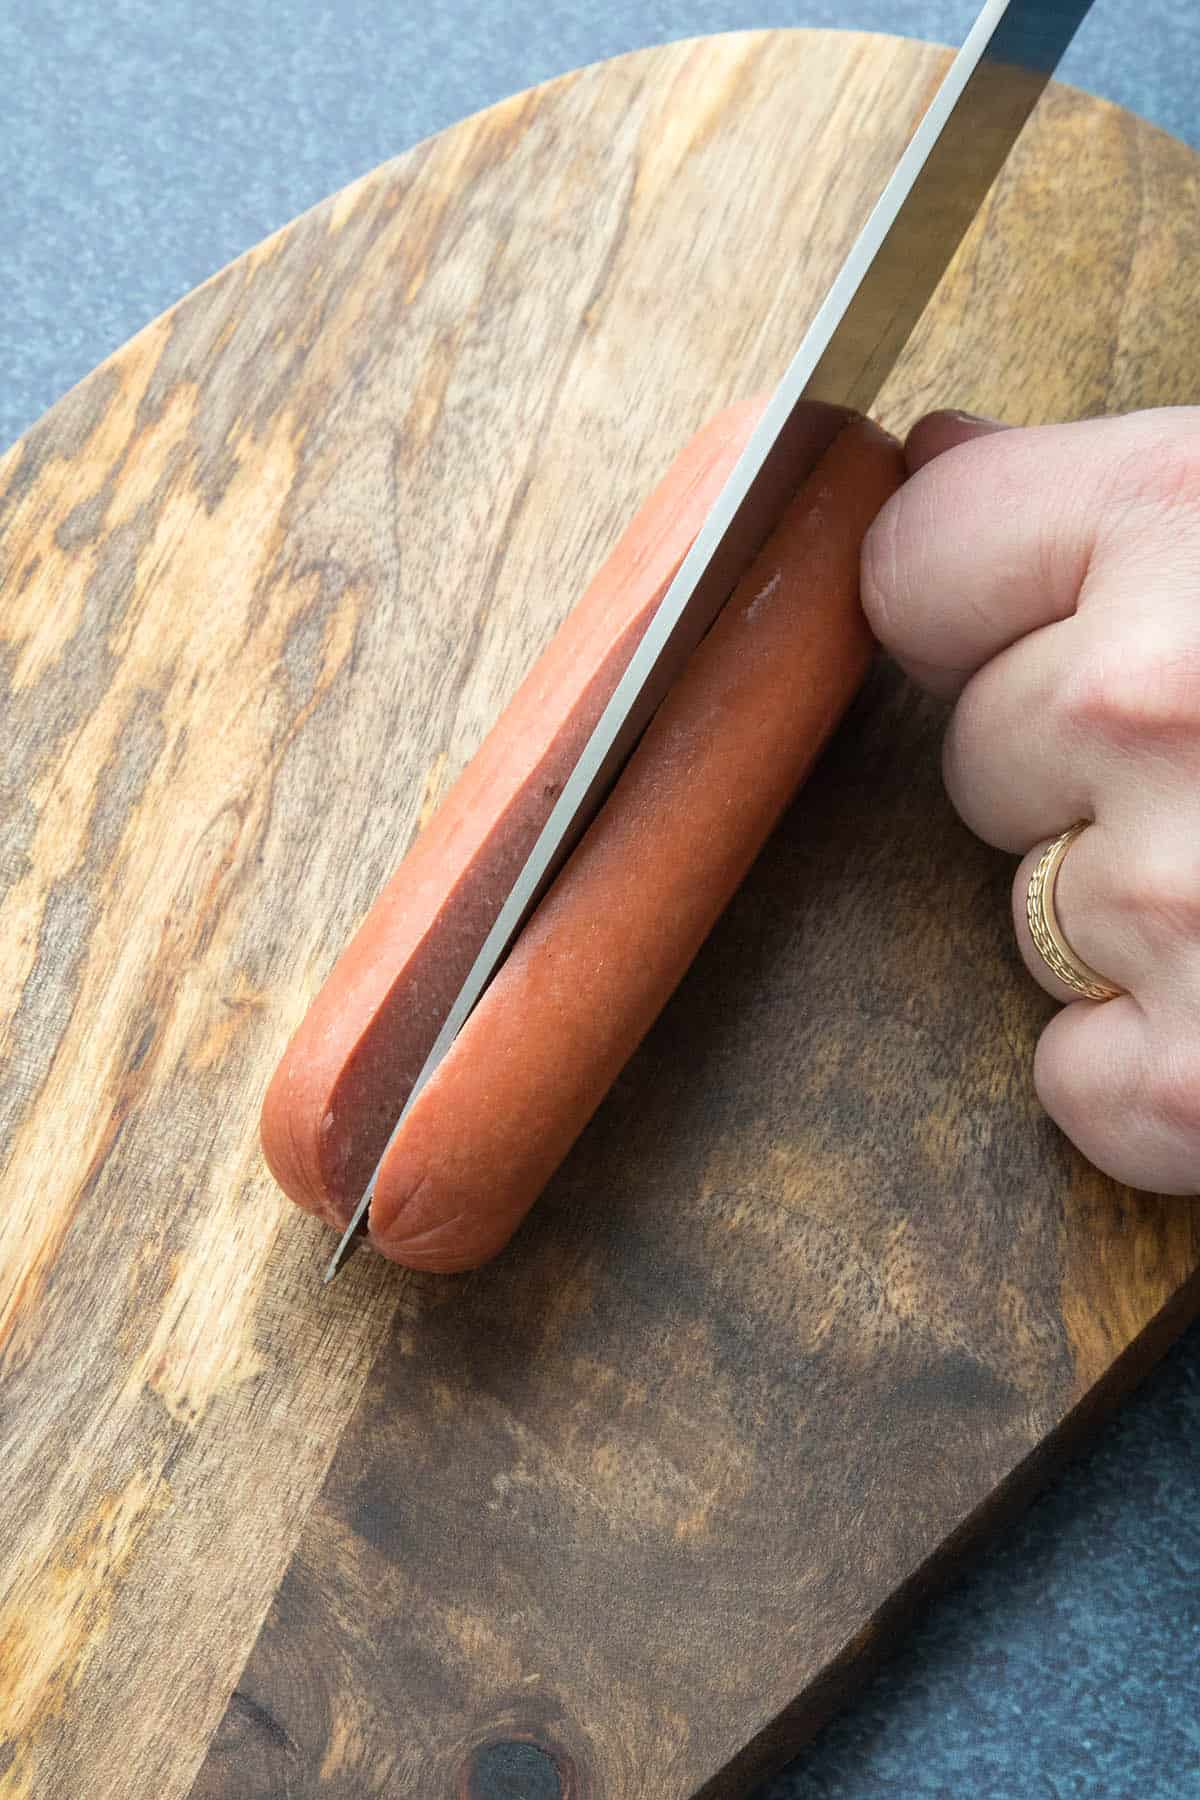 Slicing an all beef hot dog open to make Chicago style char dogs